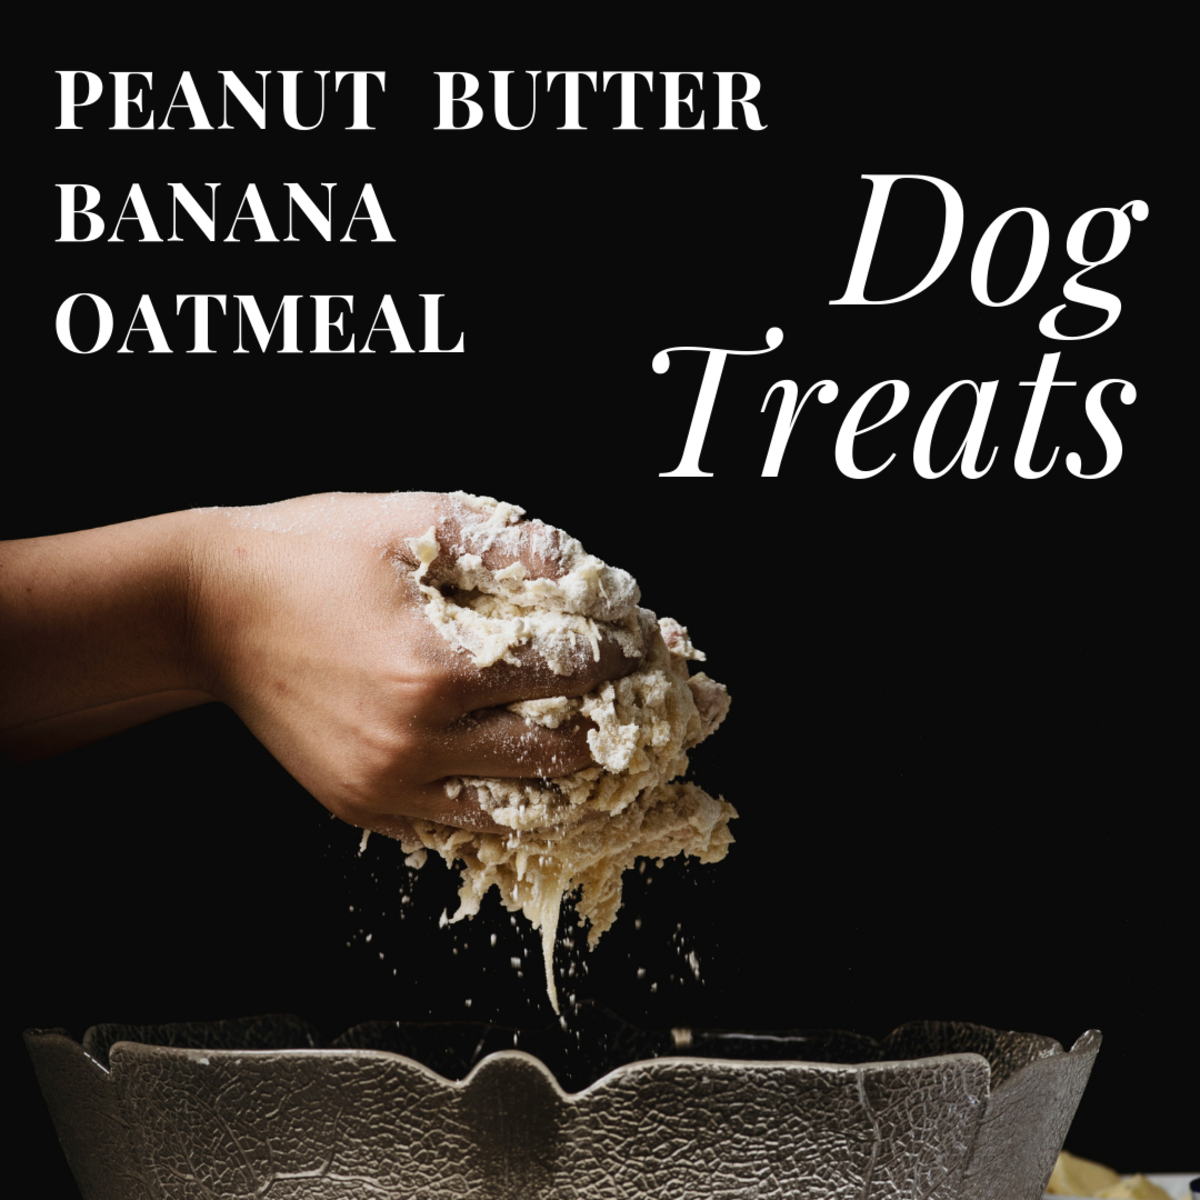 Homemade Dog Treats (Peanut Butter, Banana, and Oatmeal)